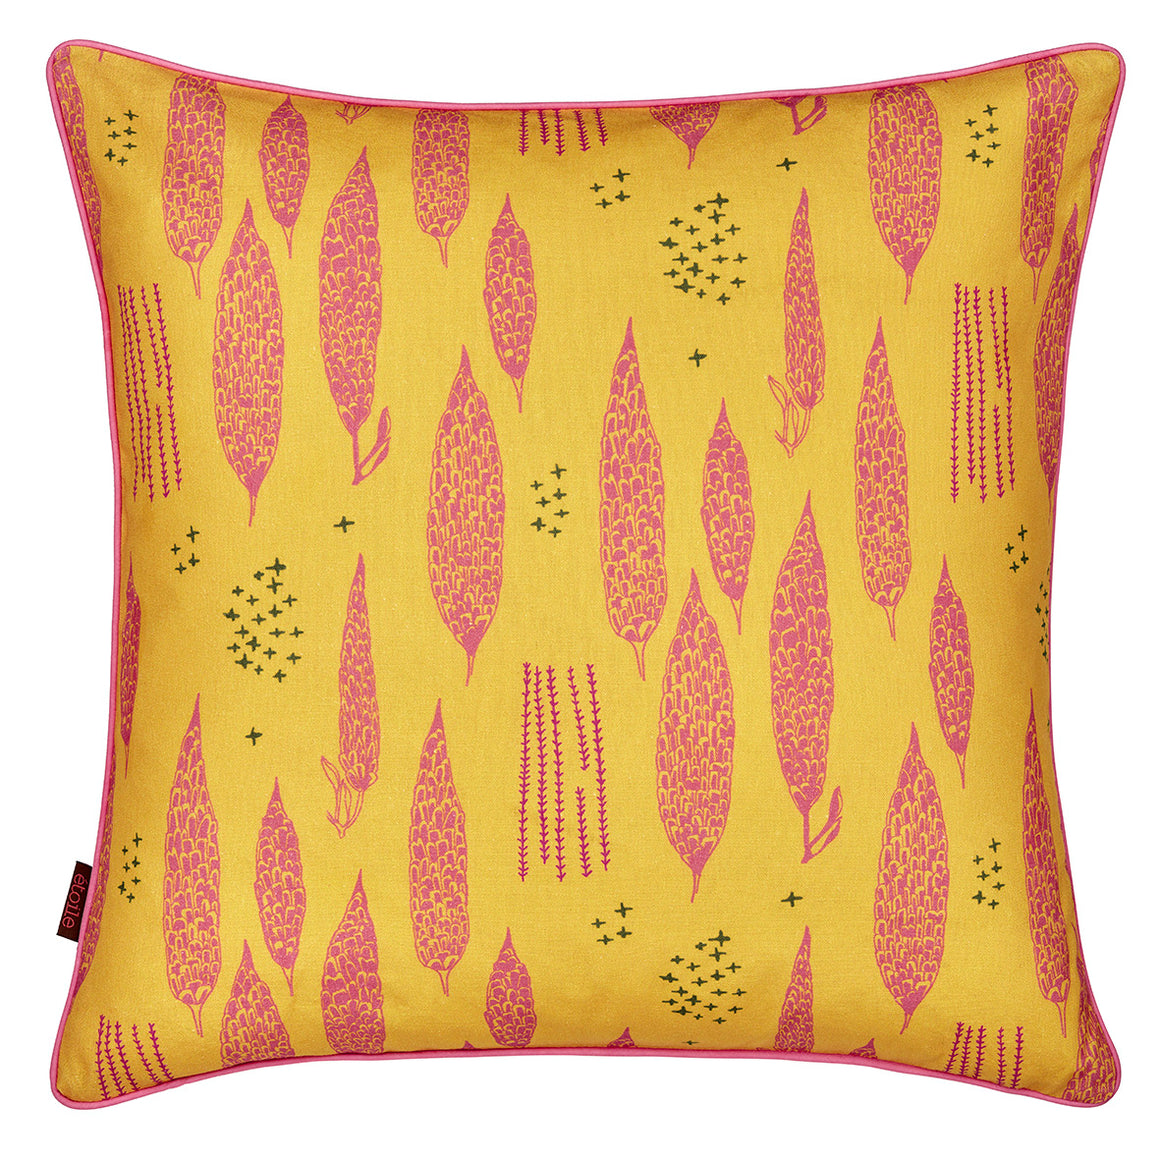 Poplar Throw Pillow - Mustard Yellow